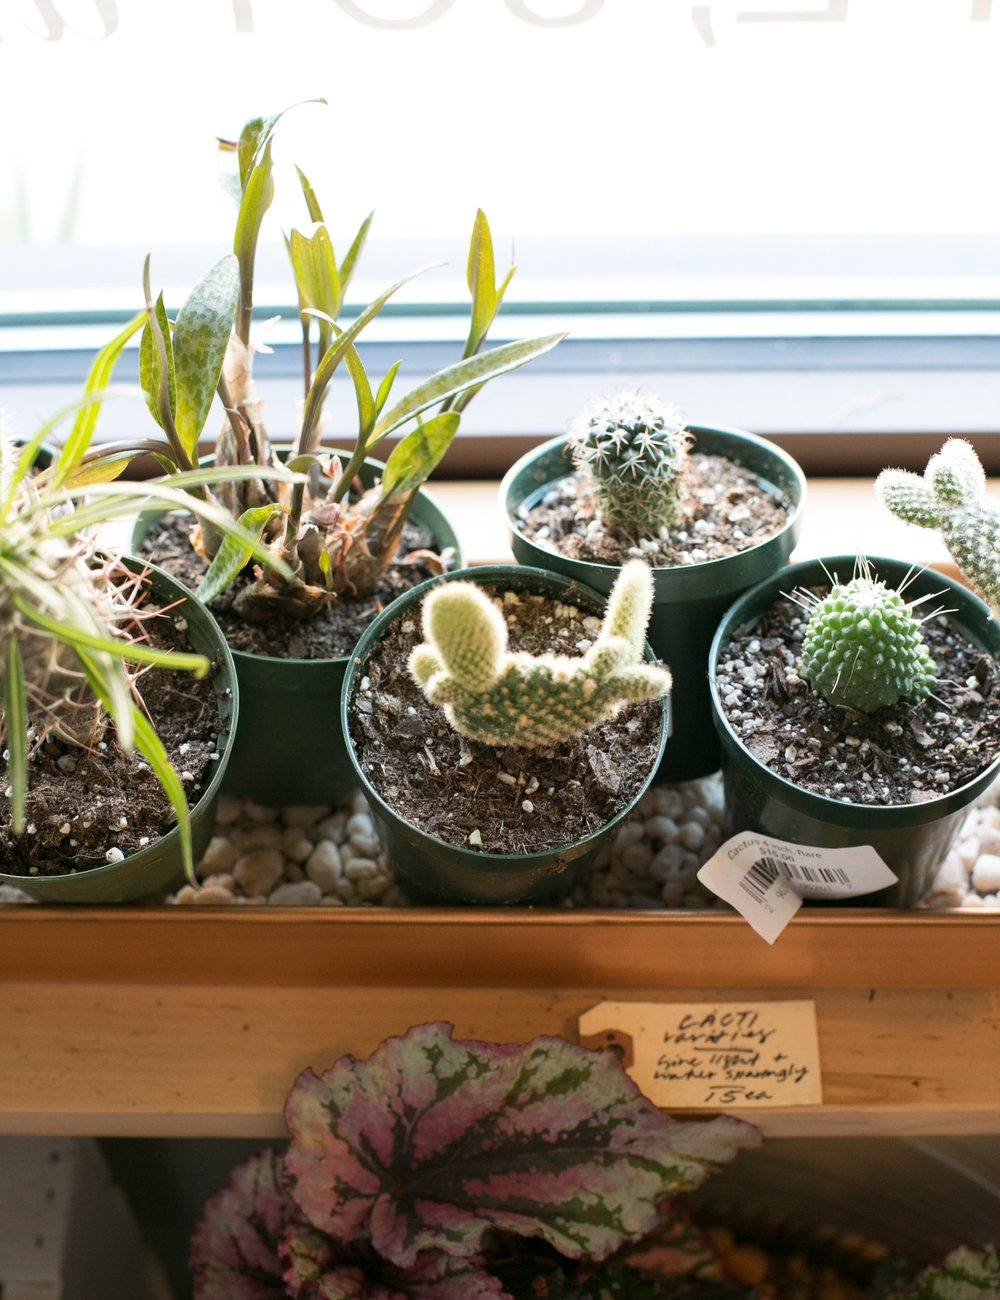 We carry a wide variety of cacti, in all shapes and sizes. If you're not sure you can take care of large cactus quite yet, try a smaller variety.